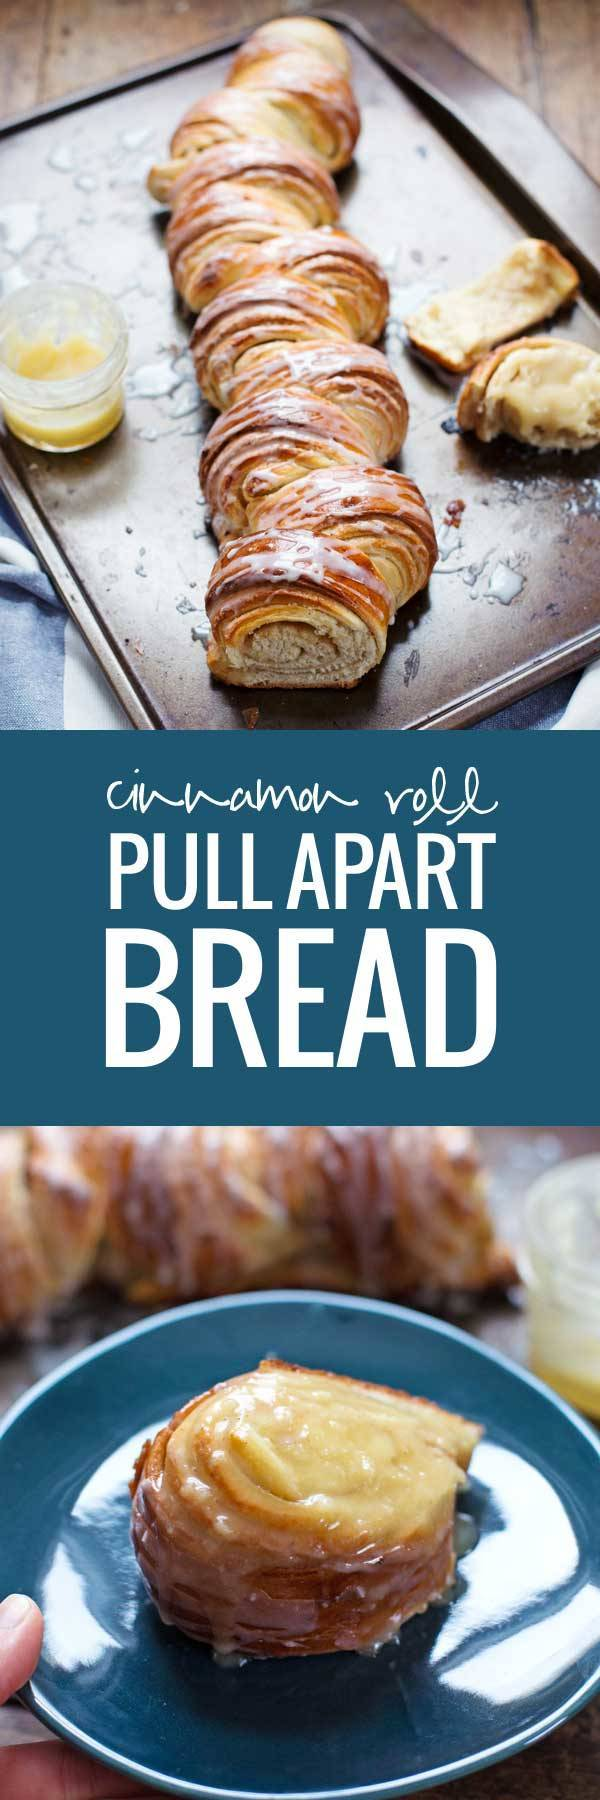 Homemade Cinnamon Roll Pull Apart Bread - so pretty and totally irresistible. | pinchofyum.com